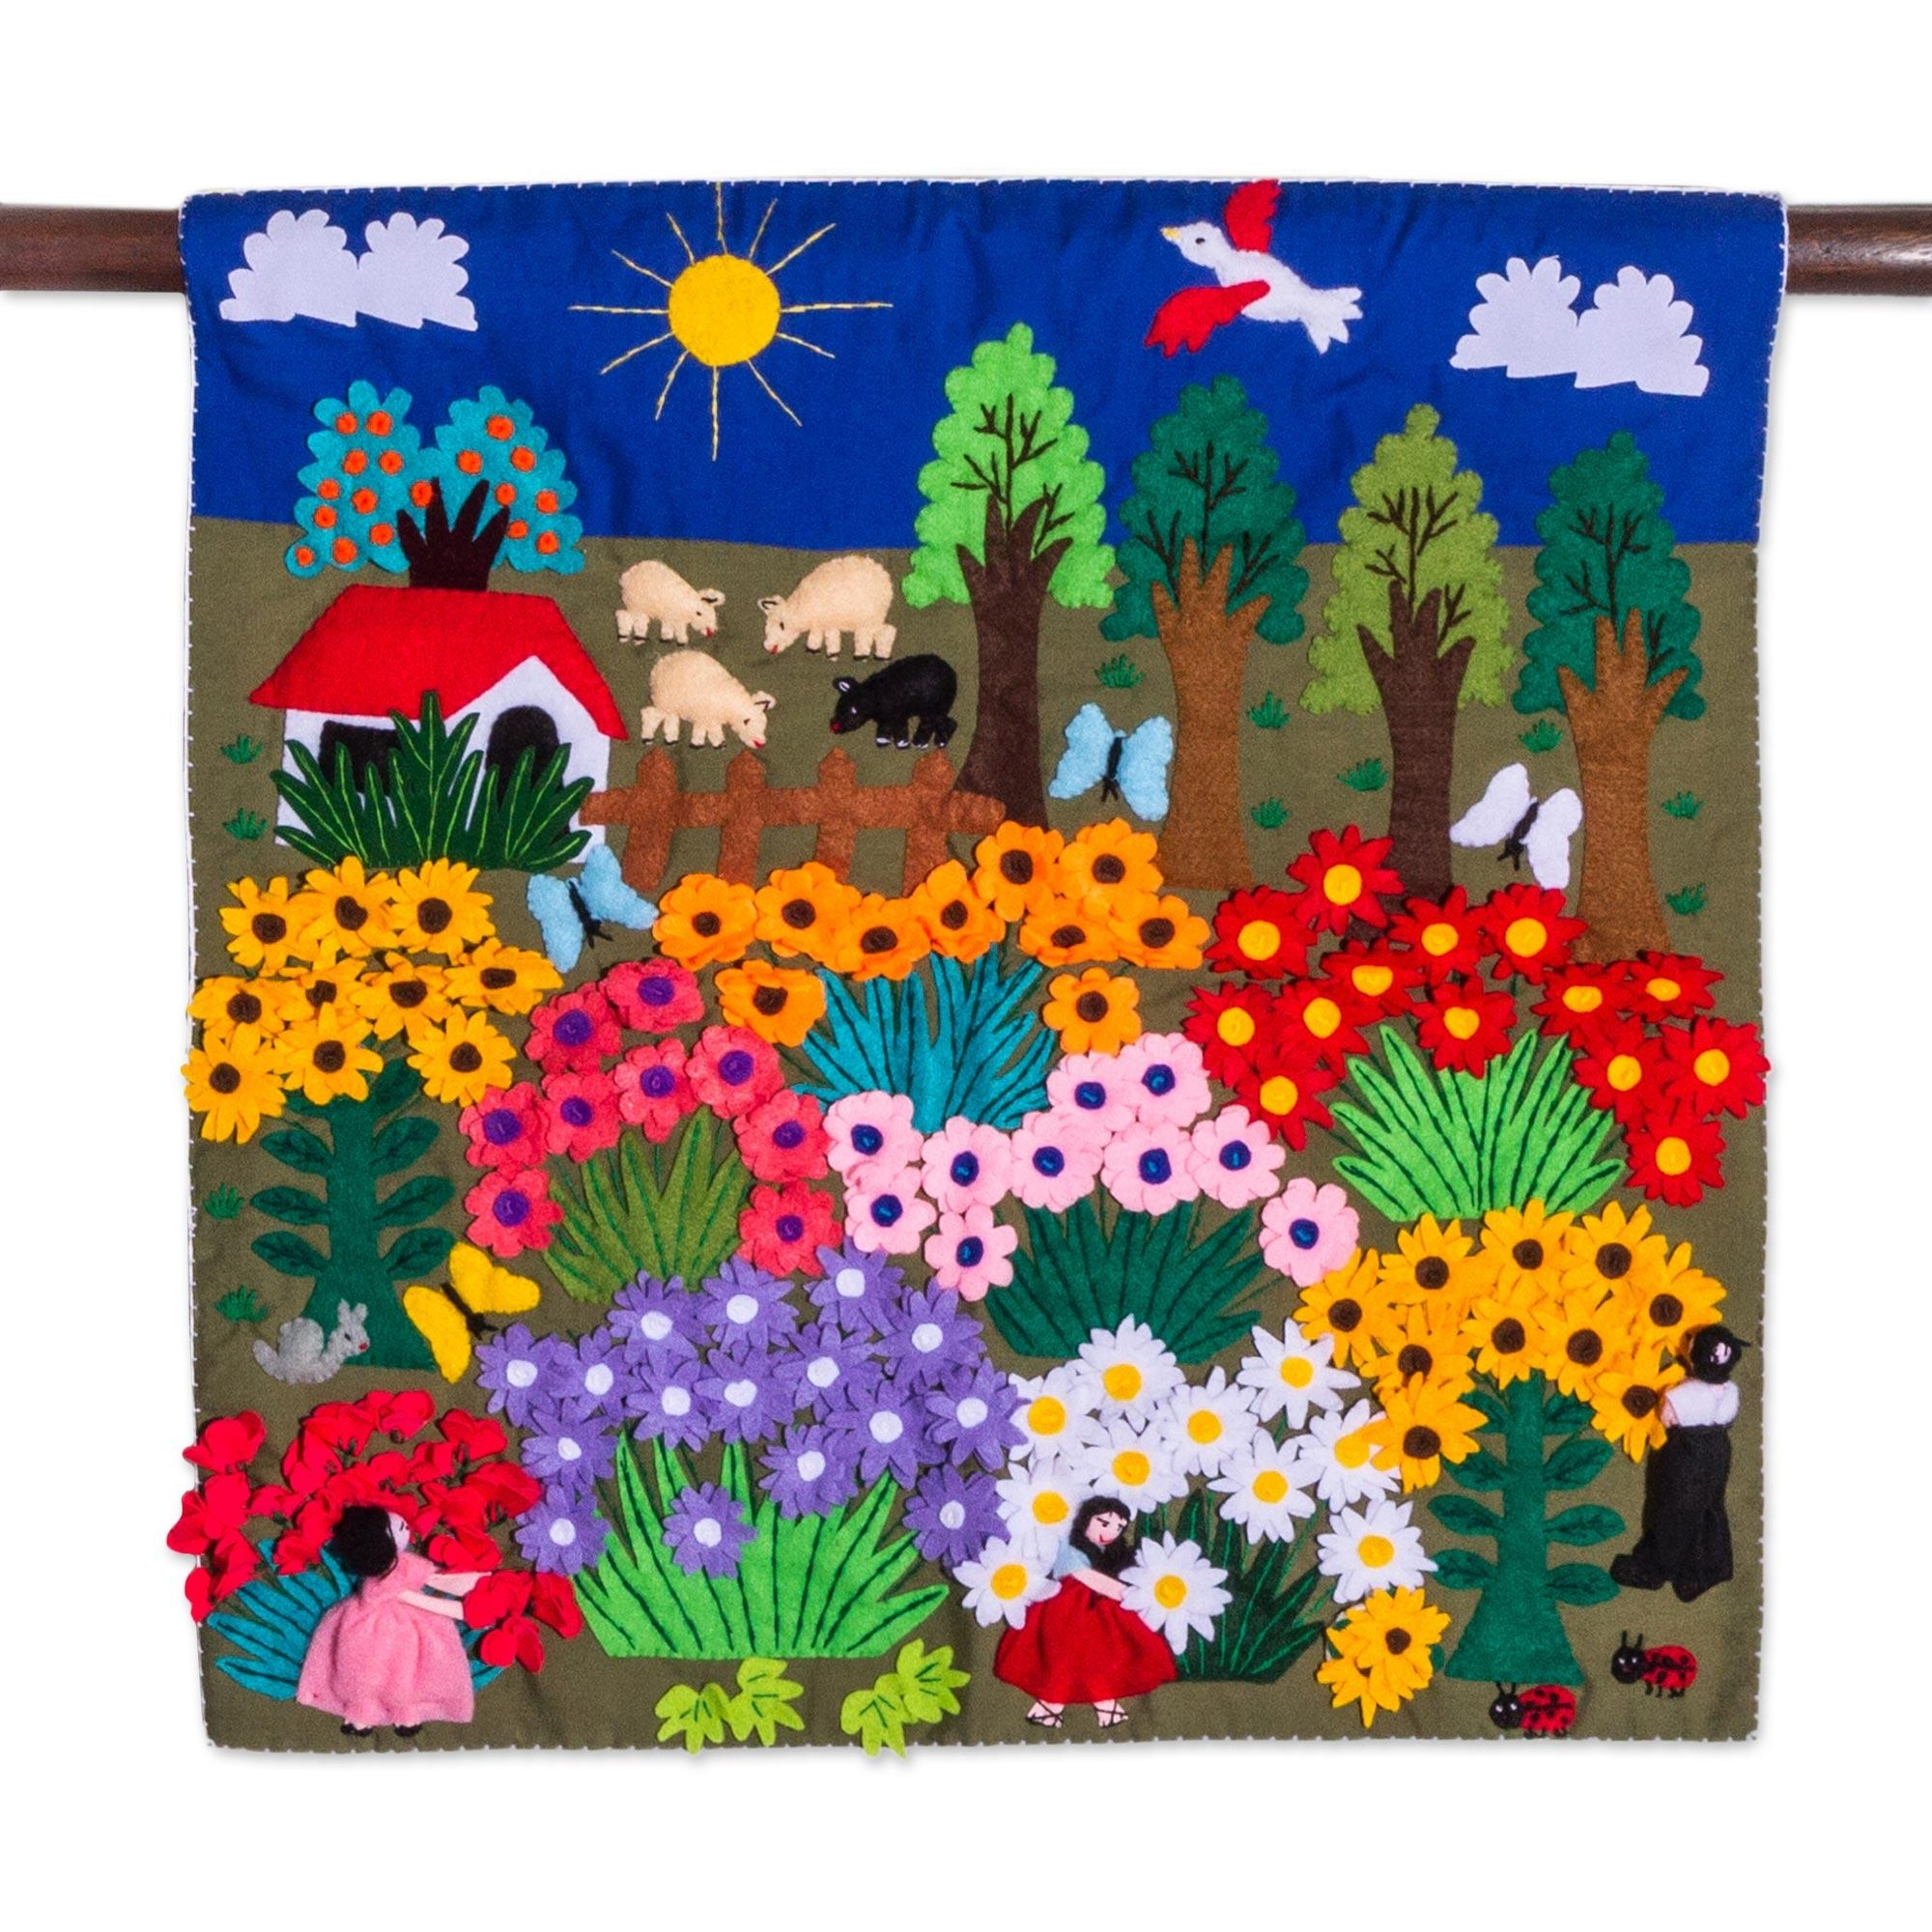 Cheerful Applique Arpilleria Wall Hanging From Peru – Harvesting For Peruvian Wall Art (Image 3 of 20)